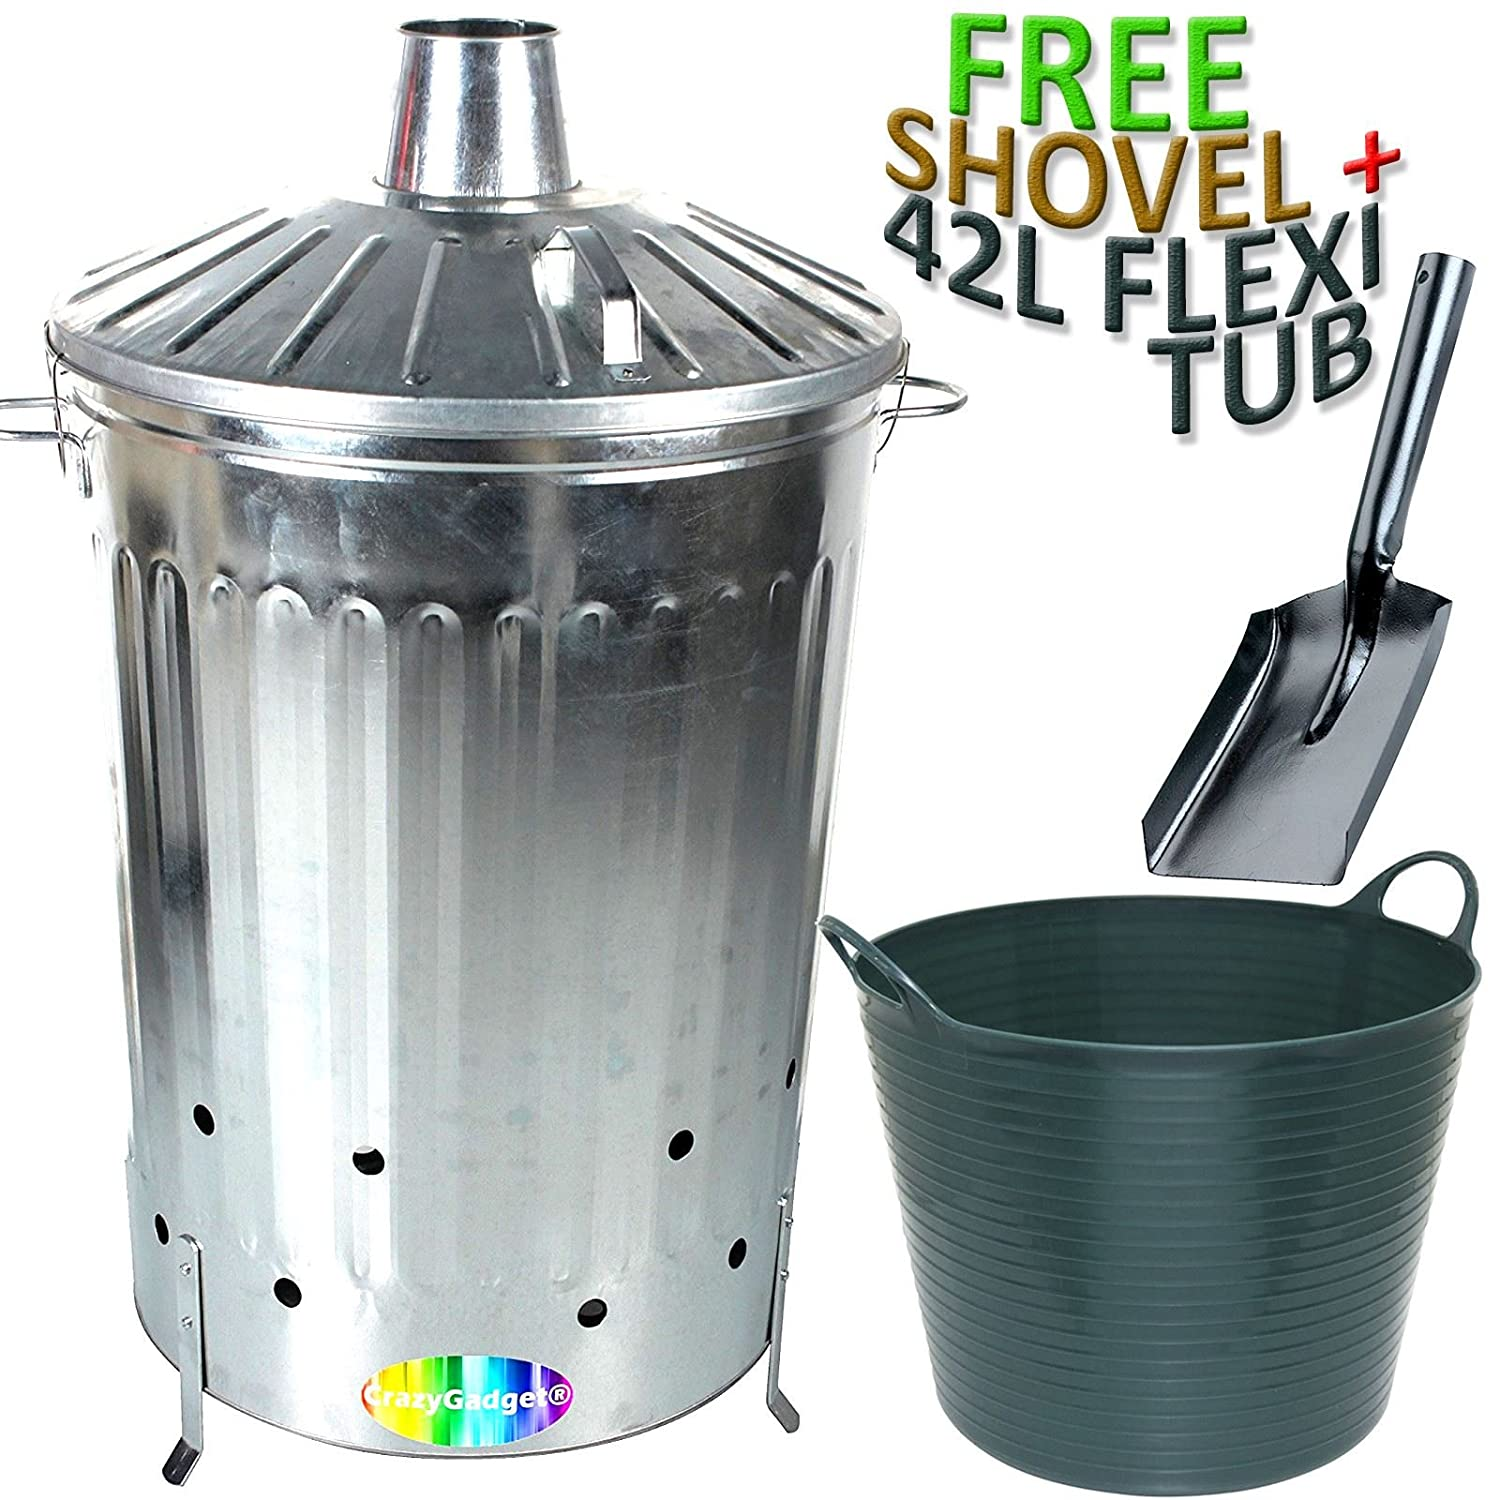 CrazyGadget® 125 Litre 125L Extra Large Galvanised Metal Incinerator Fire Burning Bin with Special Locking Lid + Free Ash Shovel + Free 42L Litre Plastic Flexi Tub ( Dark Green )